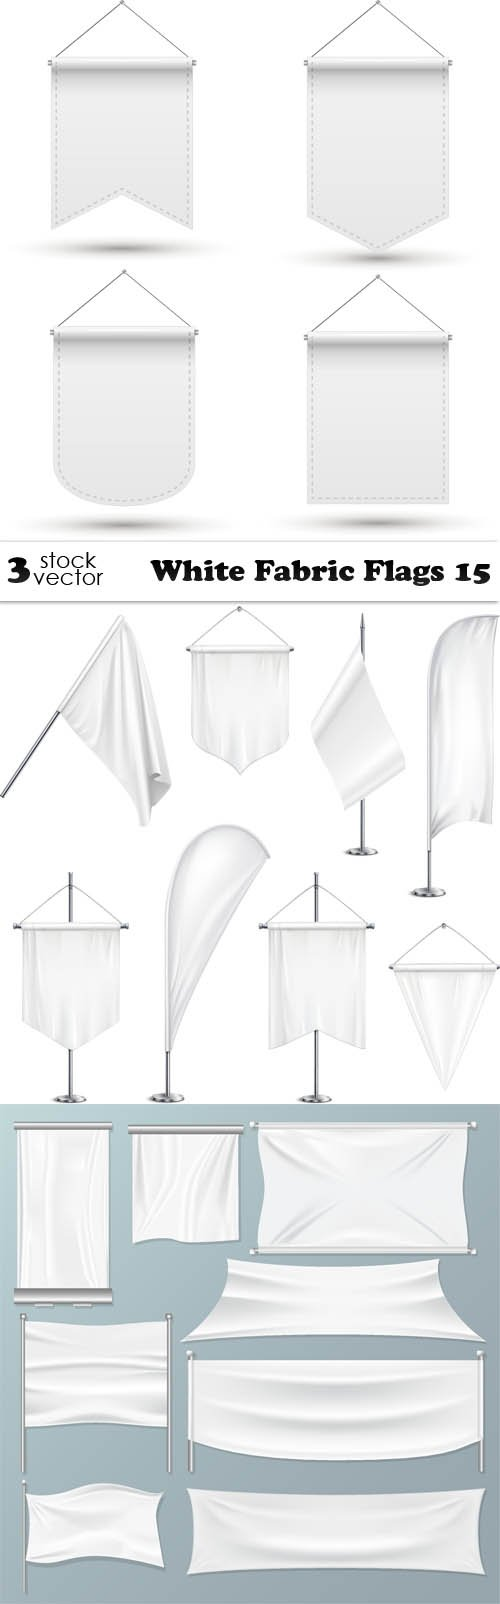 Vectors - White Fabric Flags 15